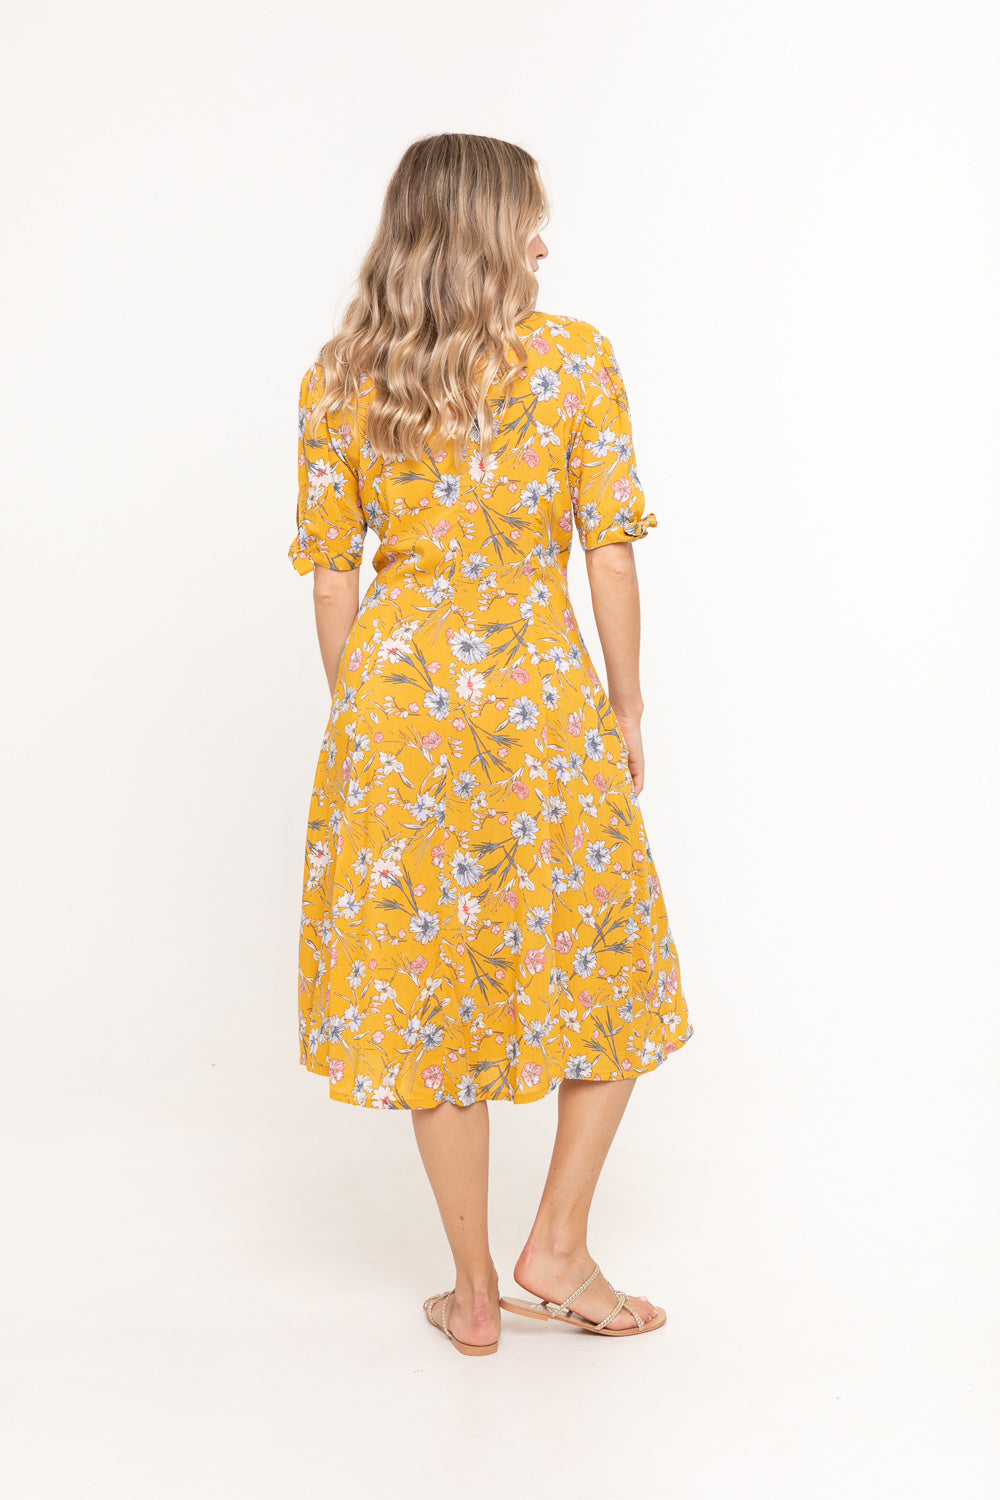 Dress Chloe - Mustard Bloom